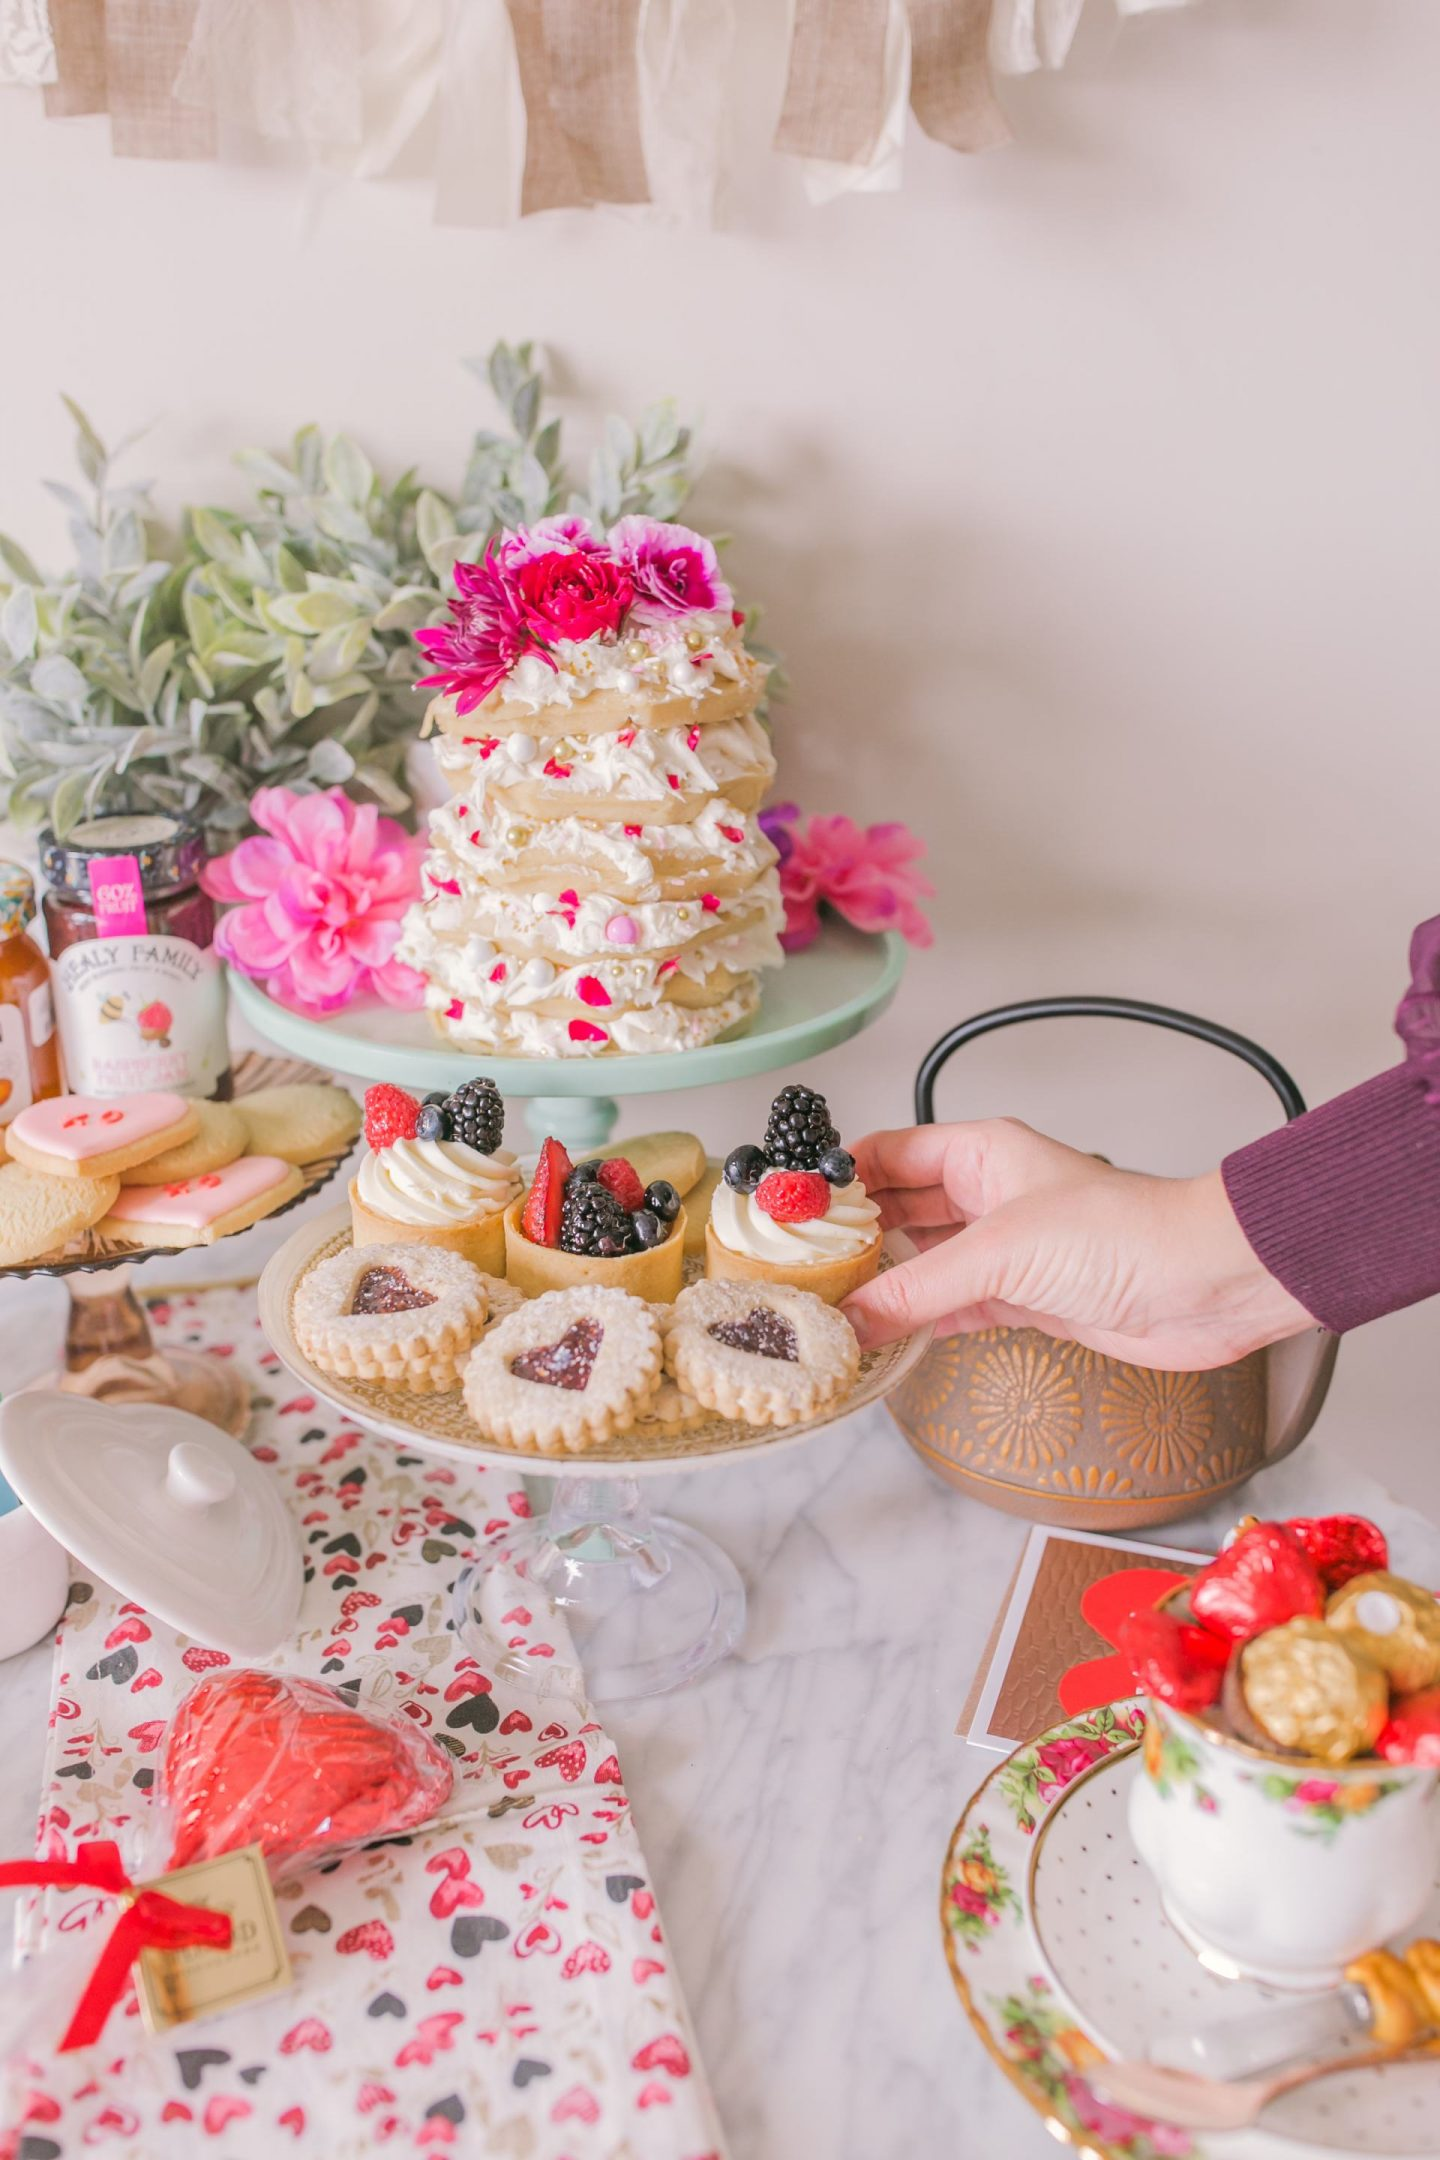 Valentine's Day Afternoon Tea and Desserts Party